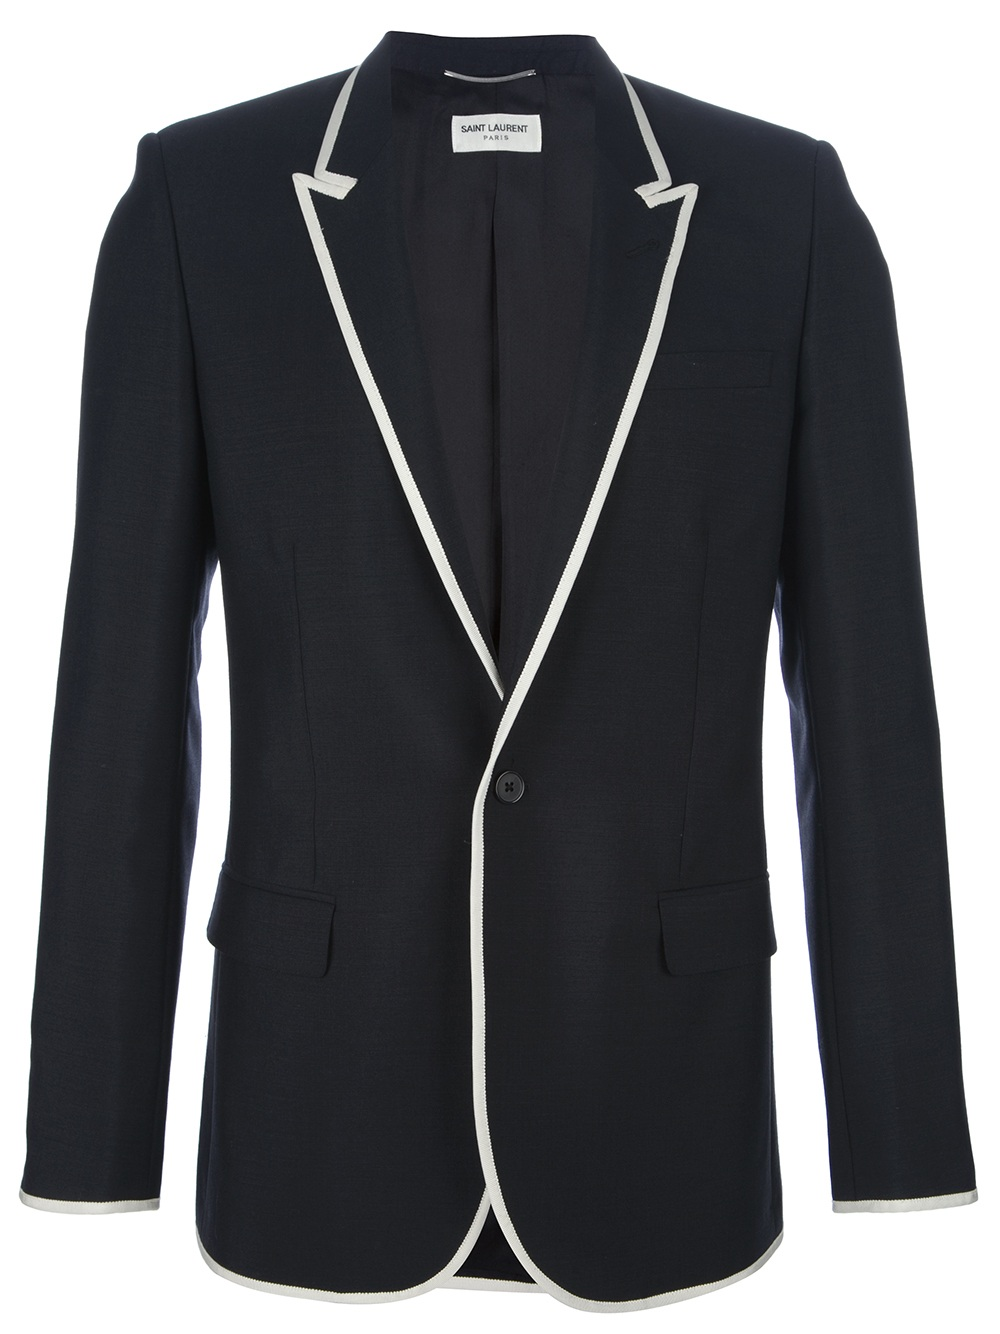 Top colors For womens blazer with contrast trim White womens blazer with contrast trim Blue womens blazer with. Our sports store features Football, Baseball, and Basketball Jerseys, T-shirts, Hats and more for NFL, MLB, NBA, NHL, MLS and College teams.